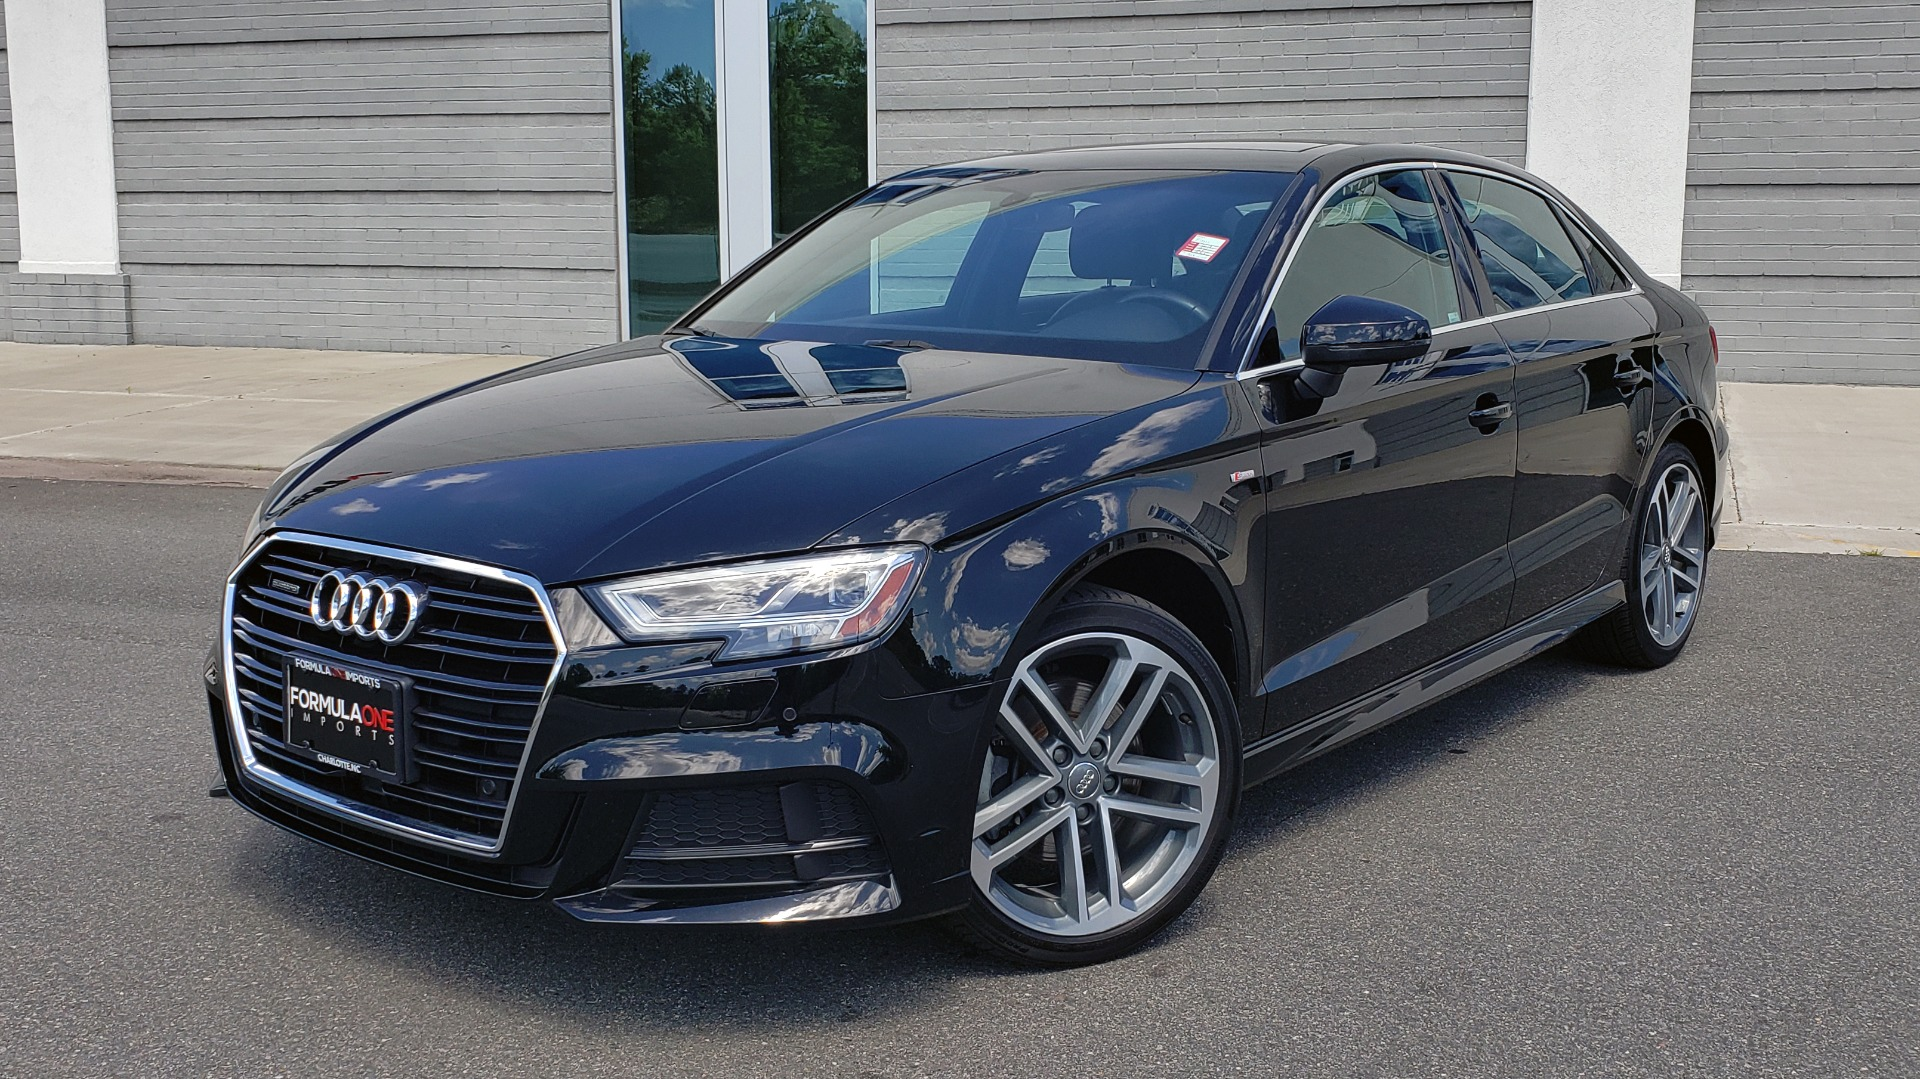 Used 2018 Audi A3 SEDAN PREMIUM PLUS / NAV / PANO-ROOF / B&O SND / LED PKG / REARVIEW for sale $25,995 at Formula Imports in Charlotte NC 28227 1